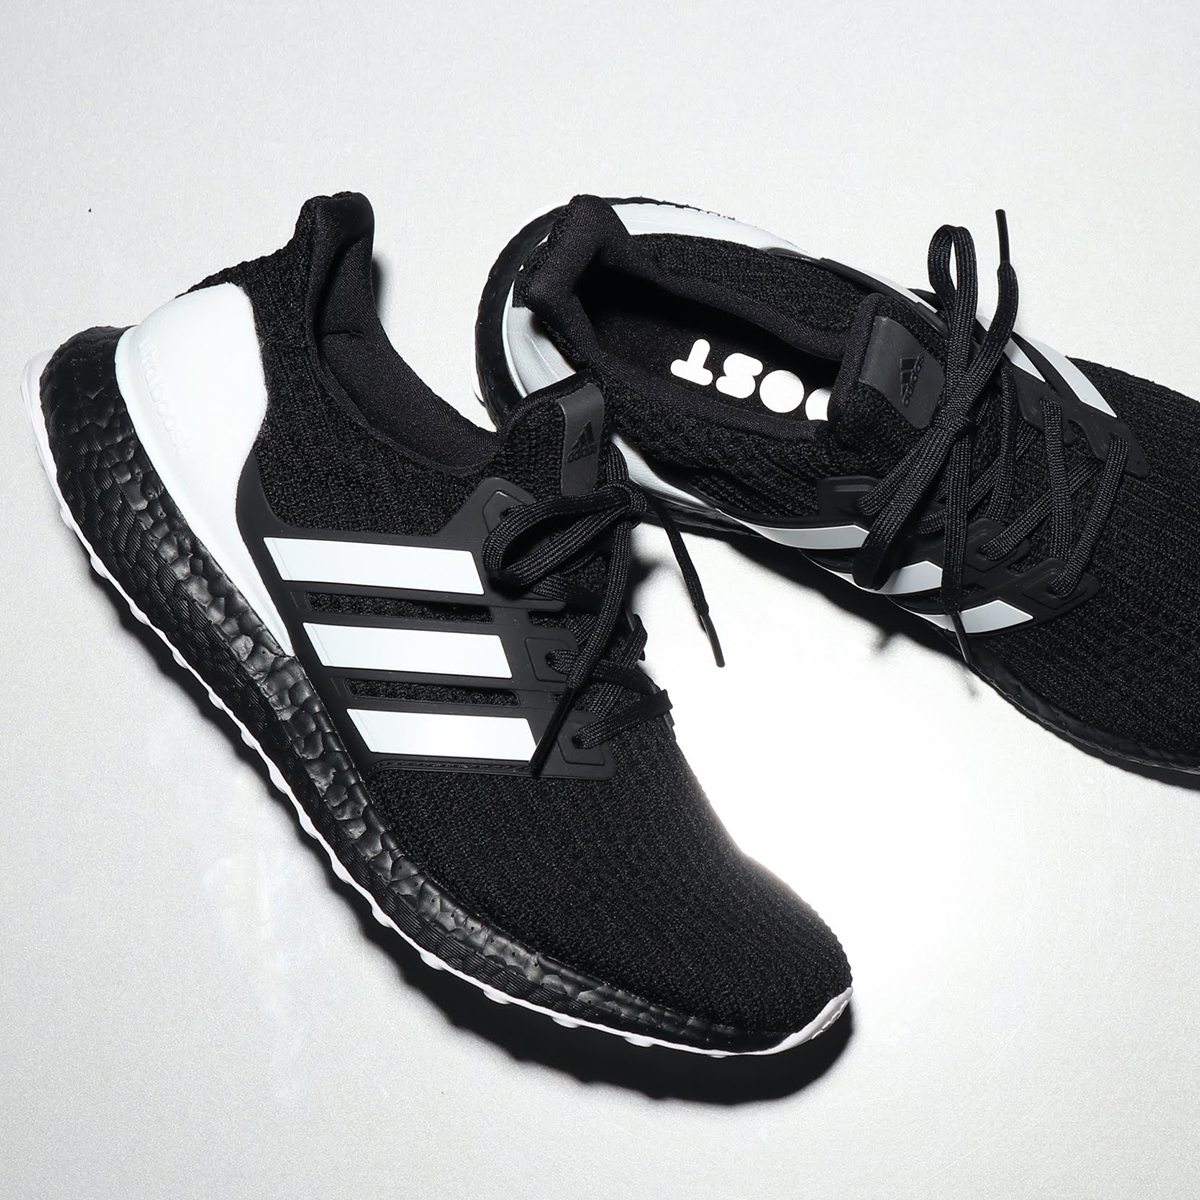 58b5aaa5d adidas UltraBOOST (Adidas ultra boost) CORE BLACK/RUNNING WHITE/CARBON  18FW- ...